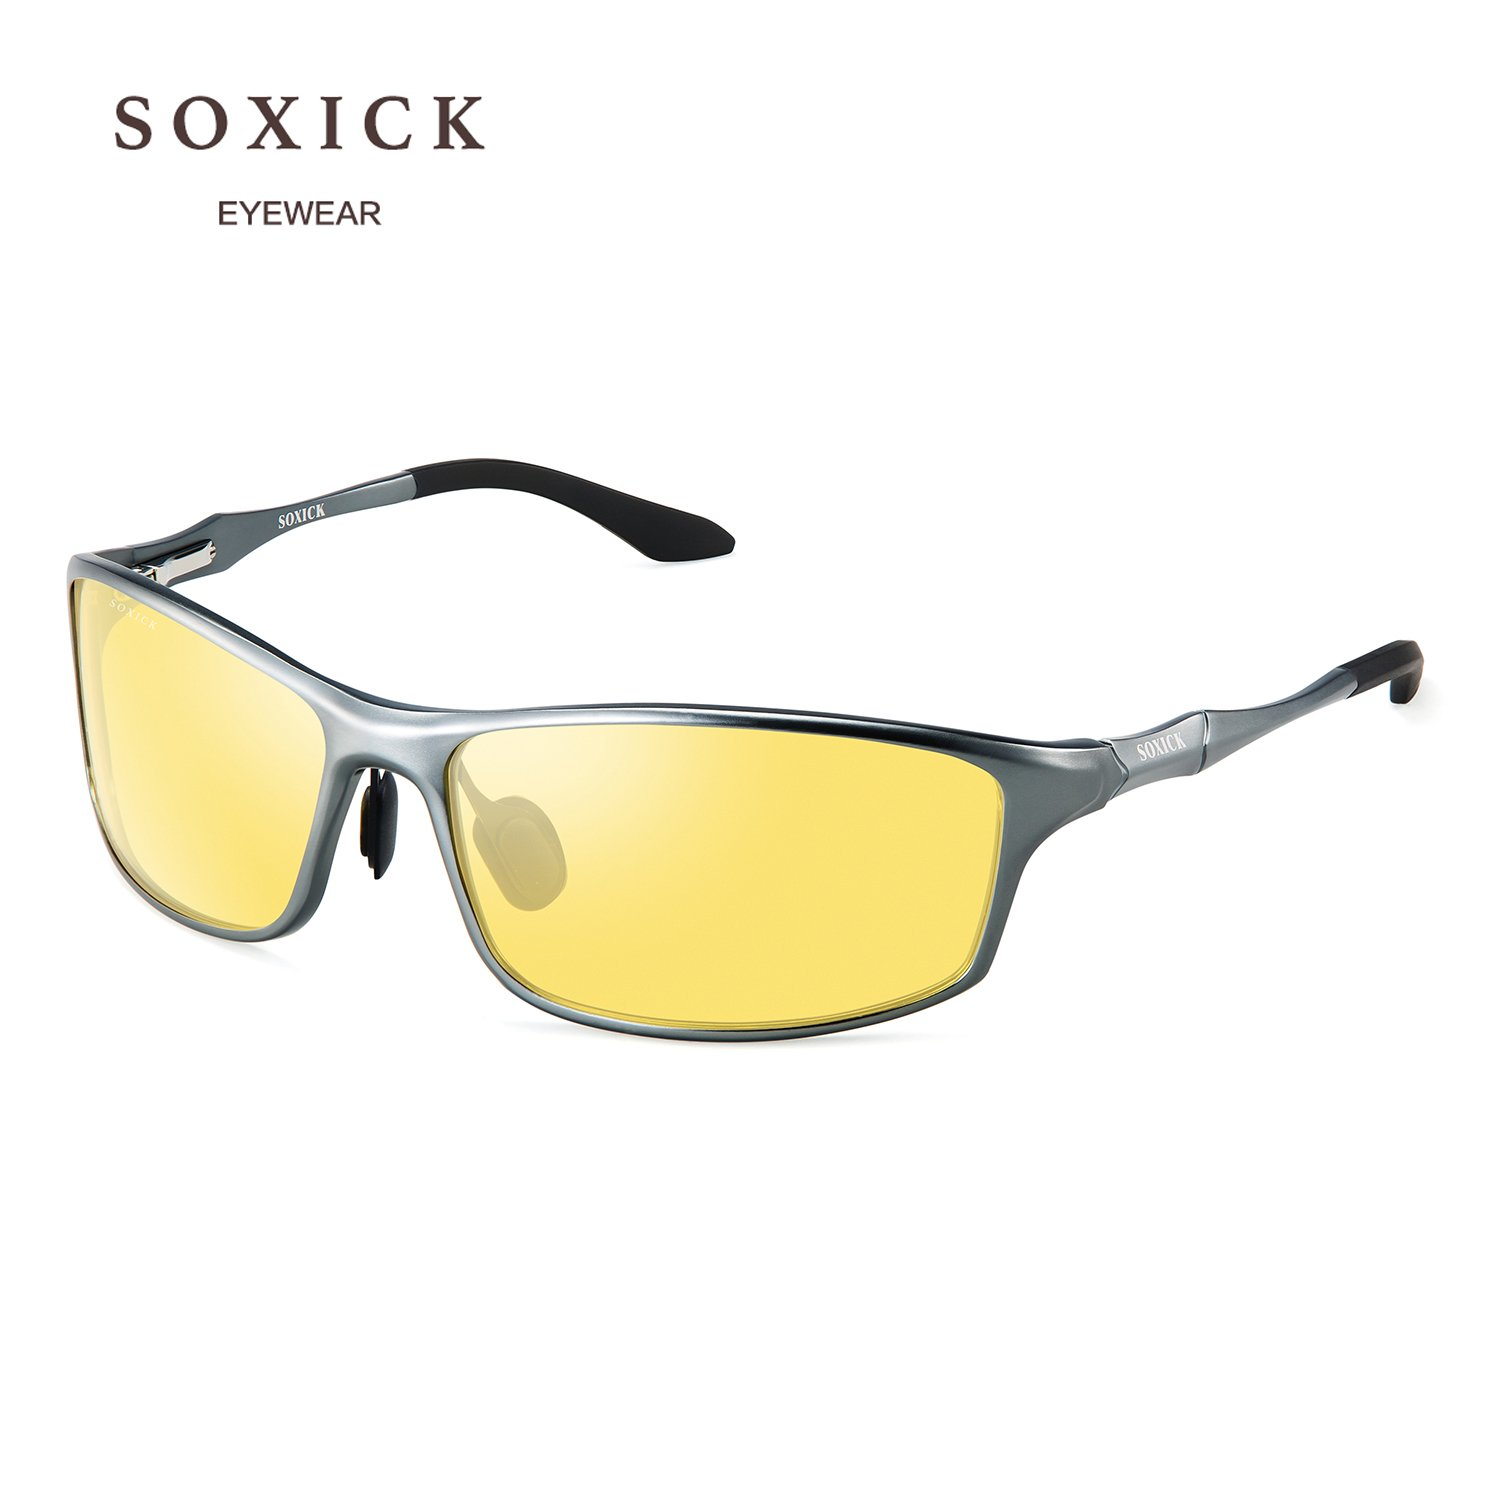 b797225b4236 Soxick Night Driving Polarized Glasses for Men Women Anti Glare Rainy Safe HD  Night Vision HOT Fashion Sunglasses